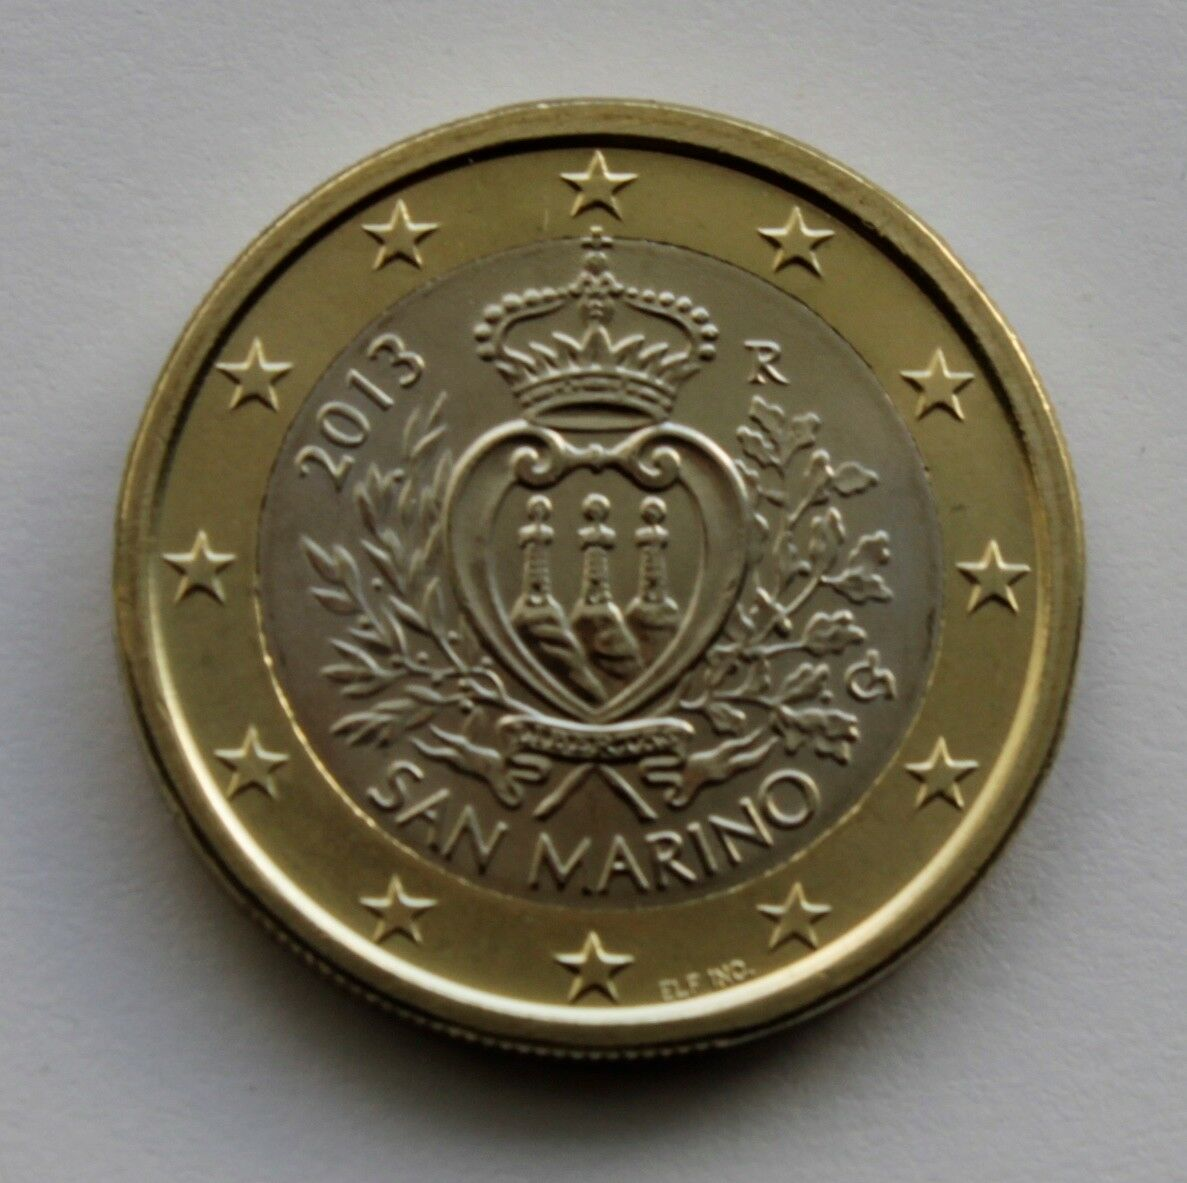 Ebay 1 Euro San Marino 1 Euro Circulation Coin 2013 Uncirculated